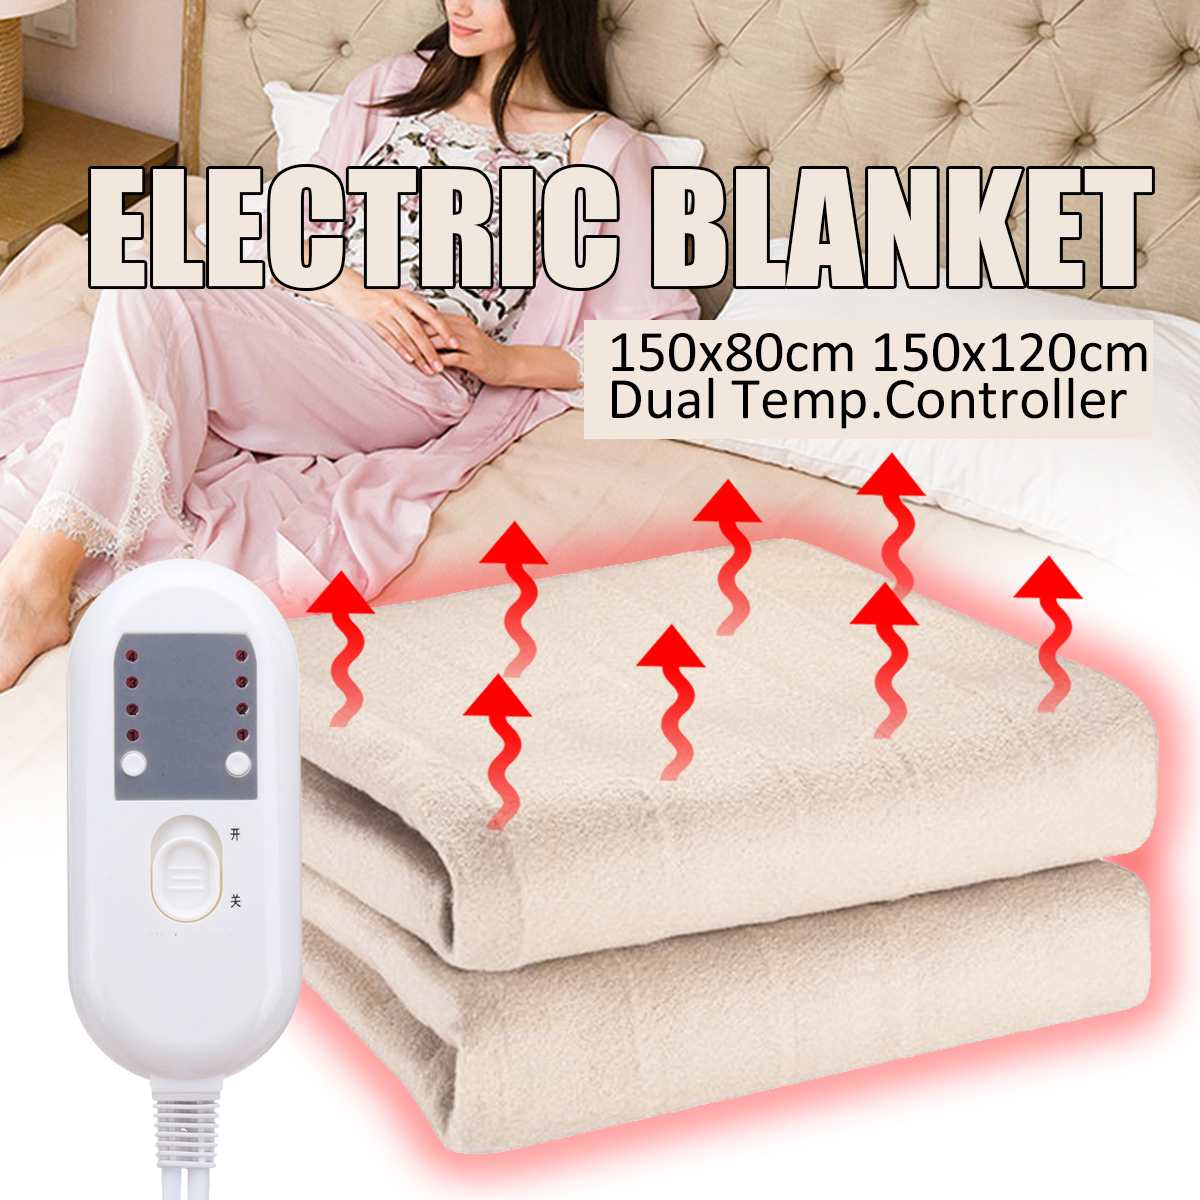 Home Electric Blanket King Size Dual Control 180X150cm Flannel 4 Control Settings Timer Soft Comfort No Noise